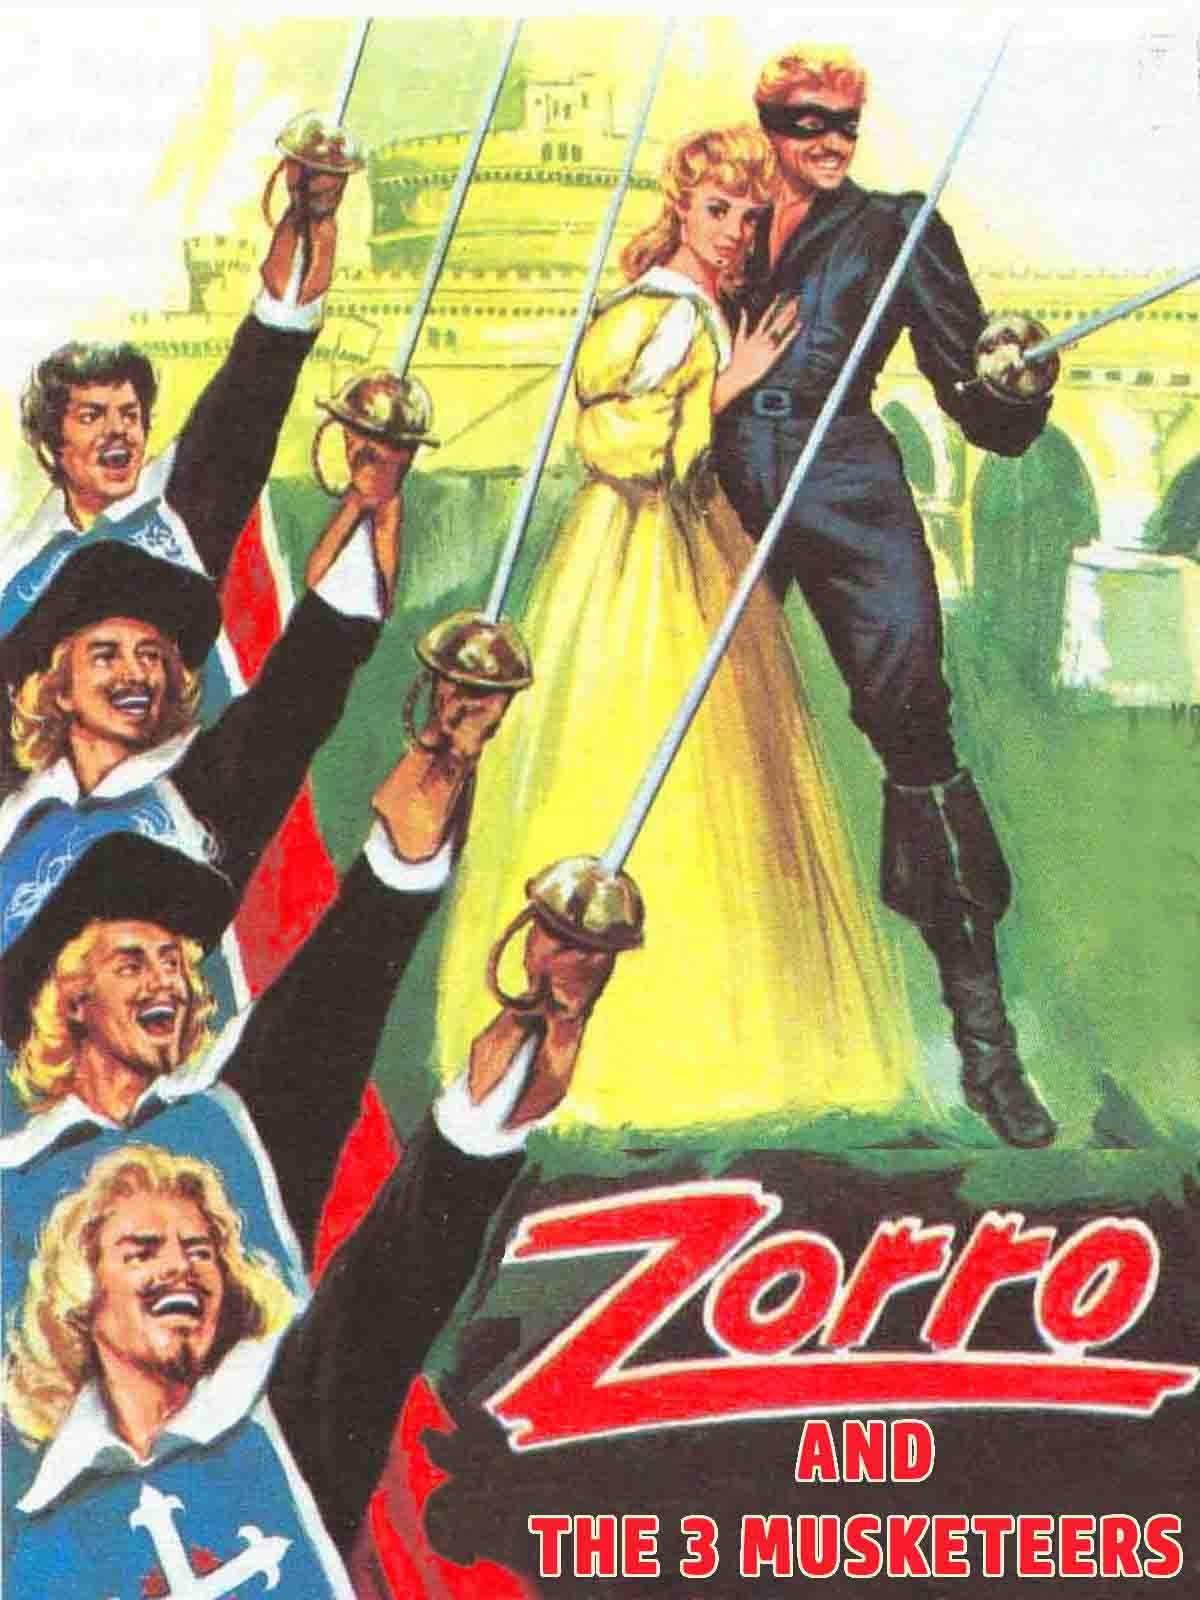 Zorro vs The Three Musketeers